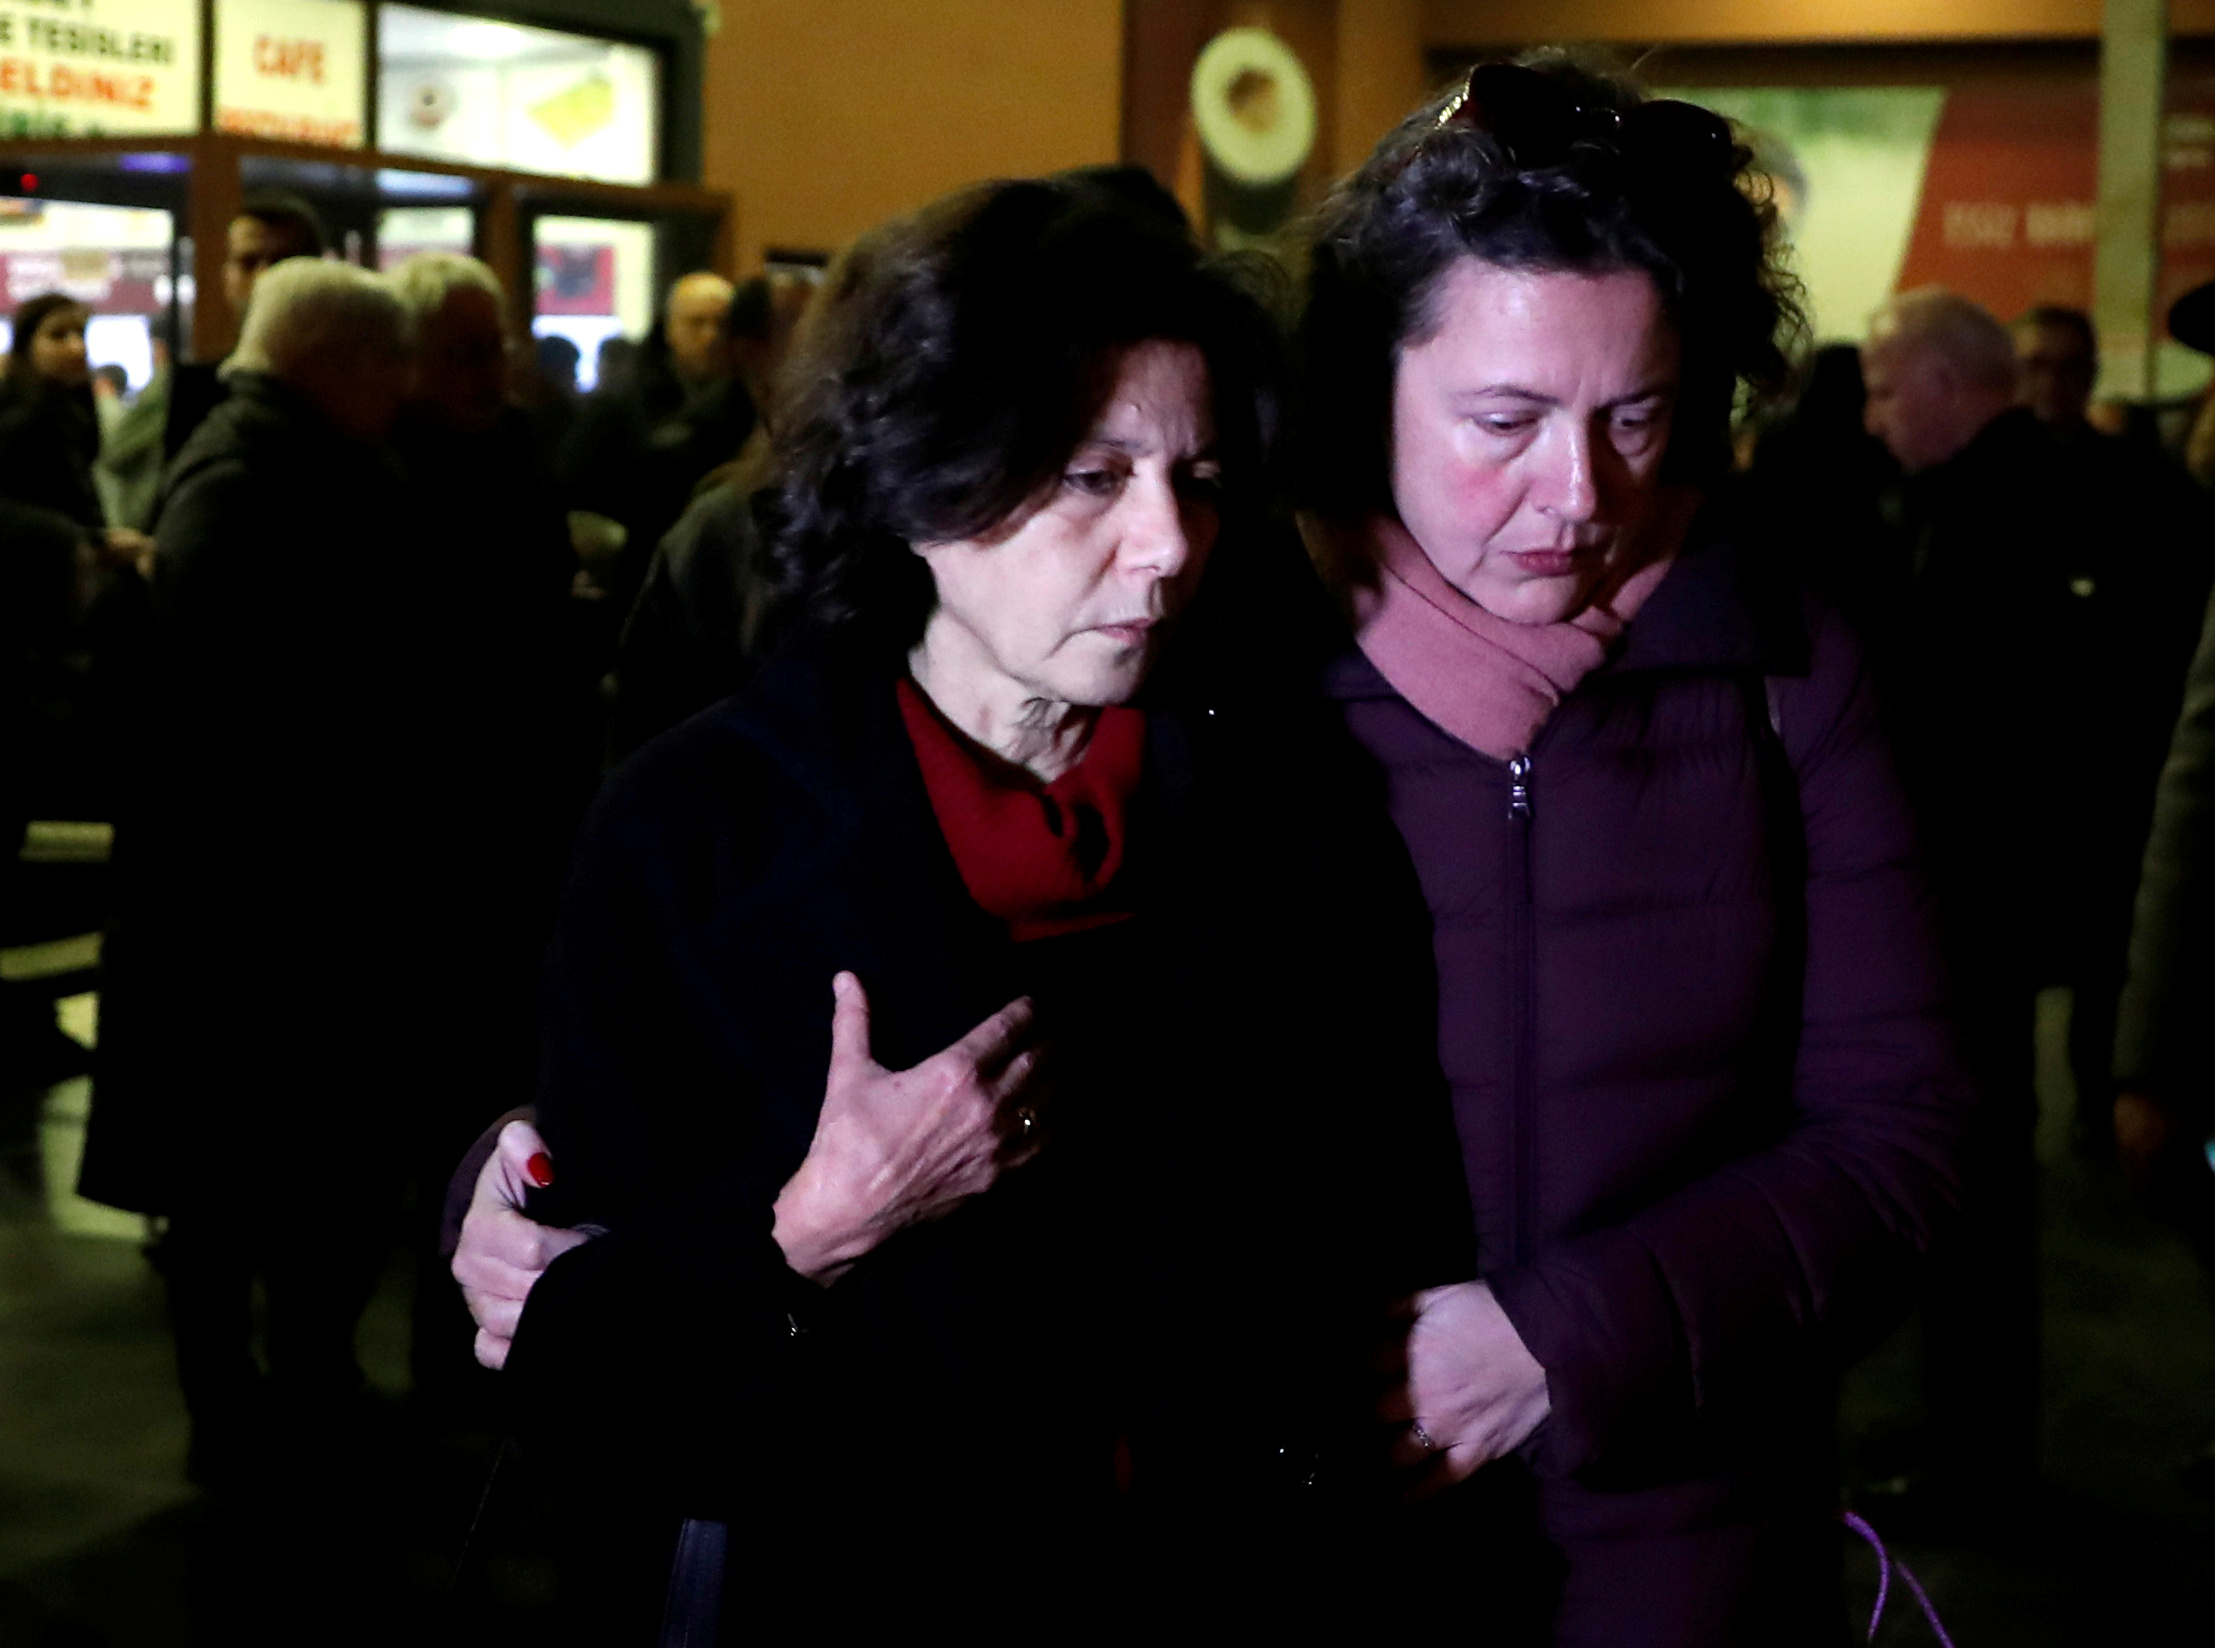 FILE PHOTO: Ayse Bugra, wife of Osman Kavala, Turkish businessman and philanthropist, leaves a restaurant after learning that Istanbul prosecutor's office demanded the re-arrest of her husband, in Silivri, near Istanbul, Turkey, February 18, 2020. REUTERS/Murad Sezer